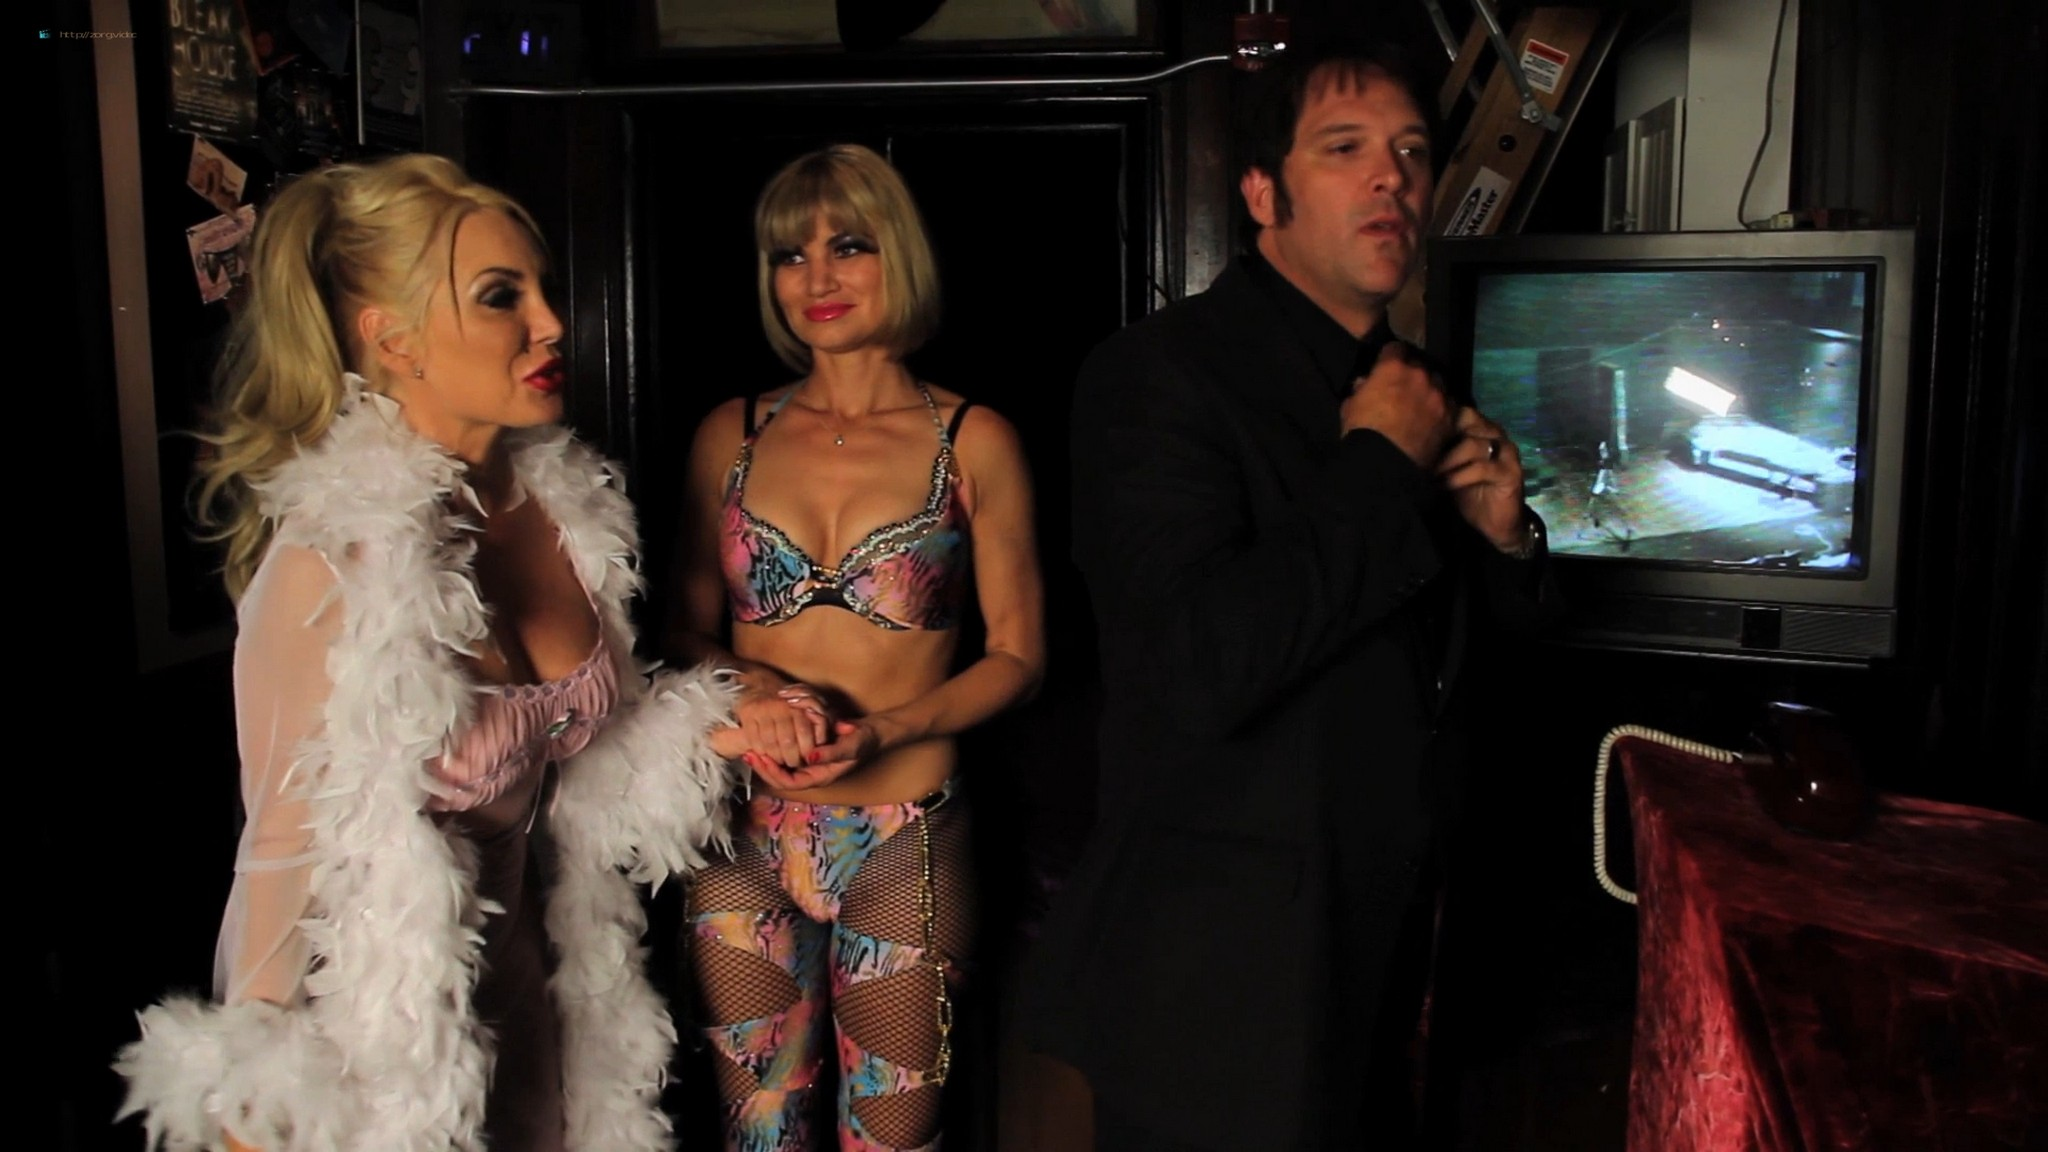 Rena Riffel nude topless - Showgirls 2: Penny's from Heaven (2011) HD 1080p Web (5)